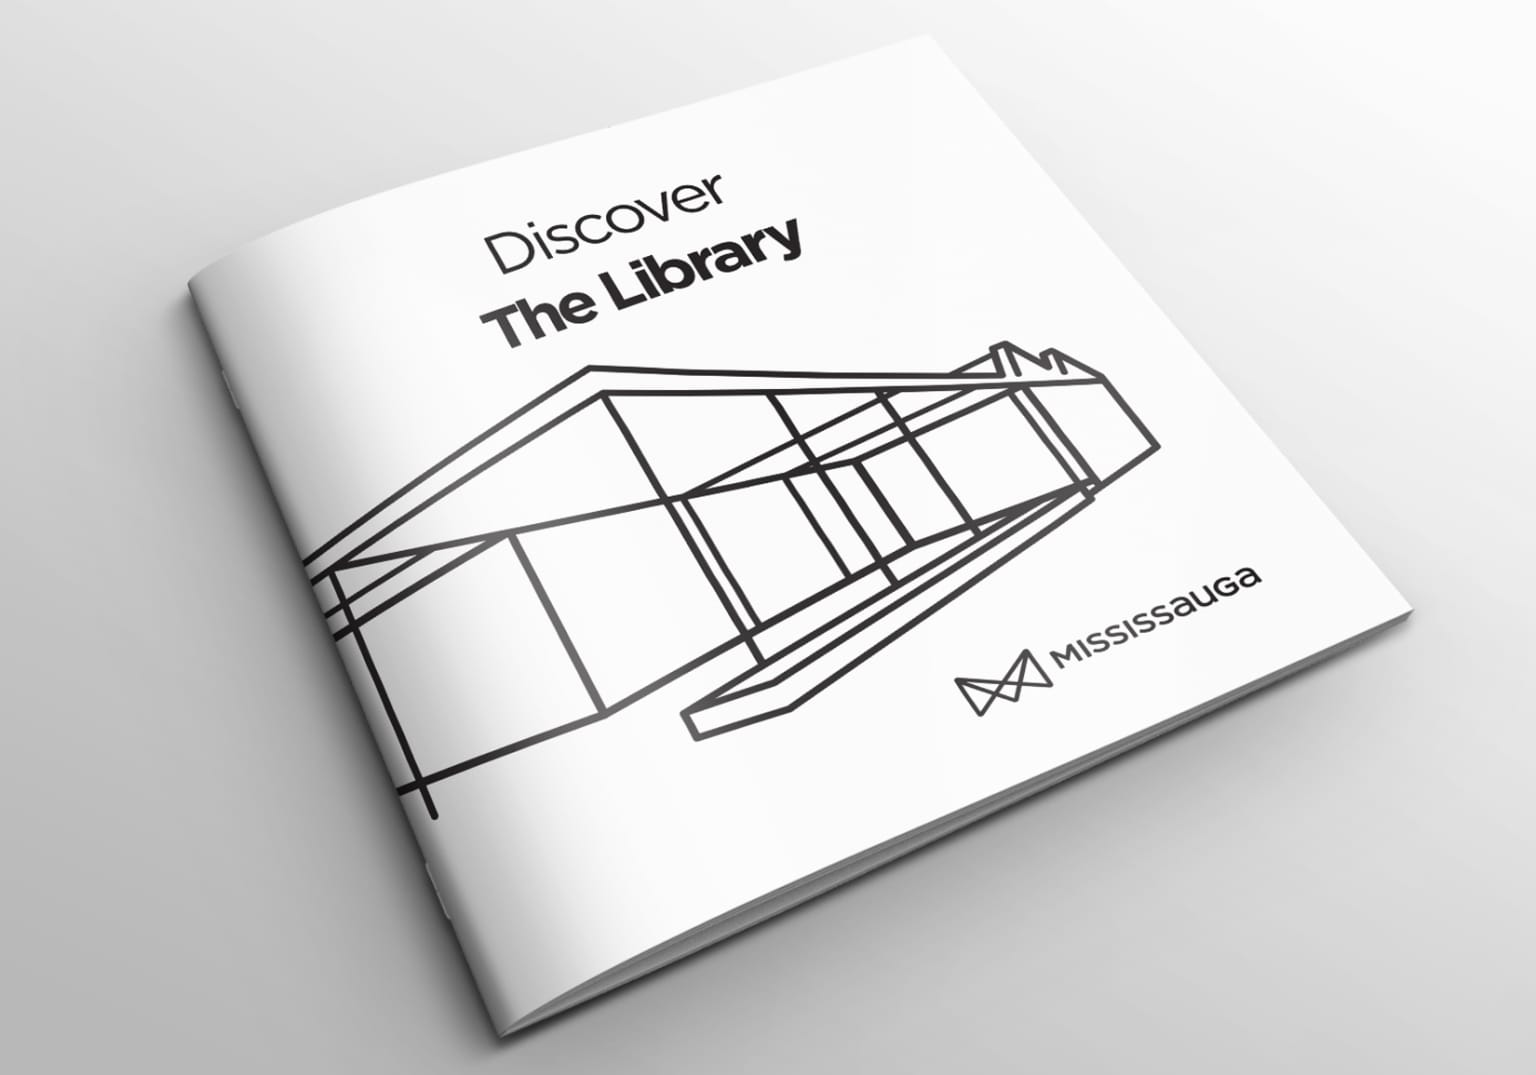 Discovery Passport – The Library